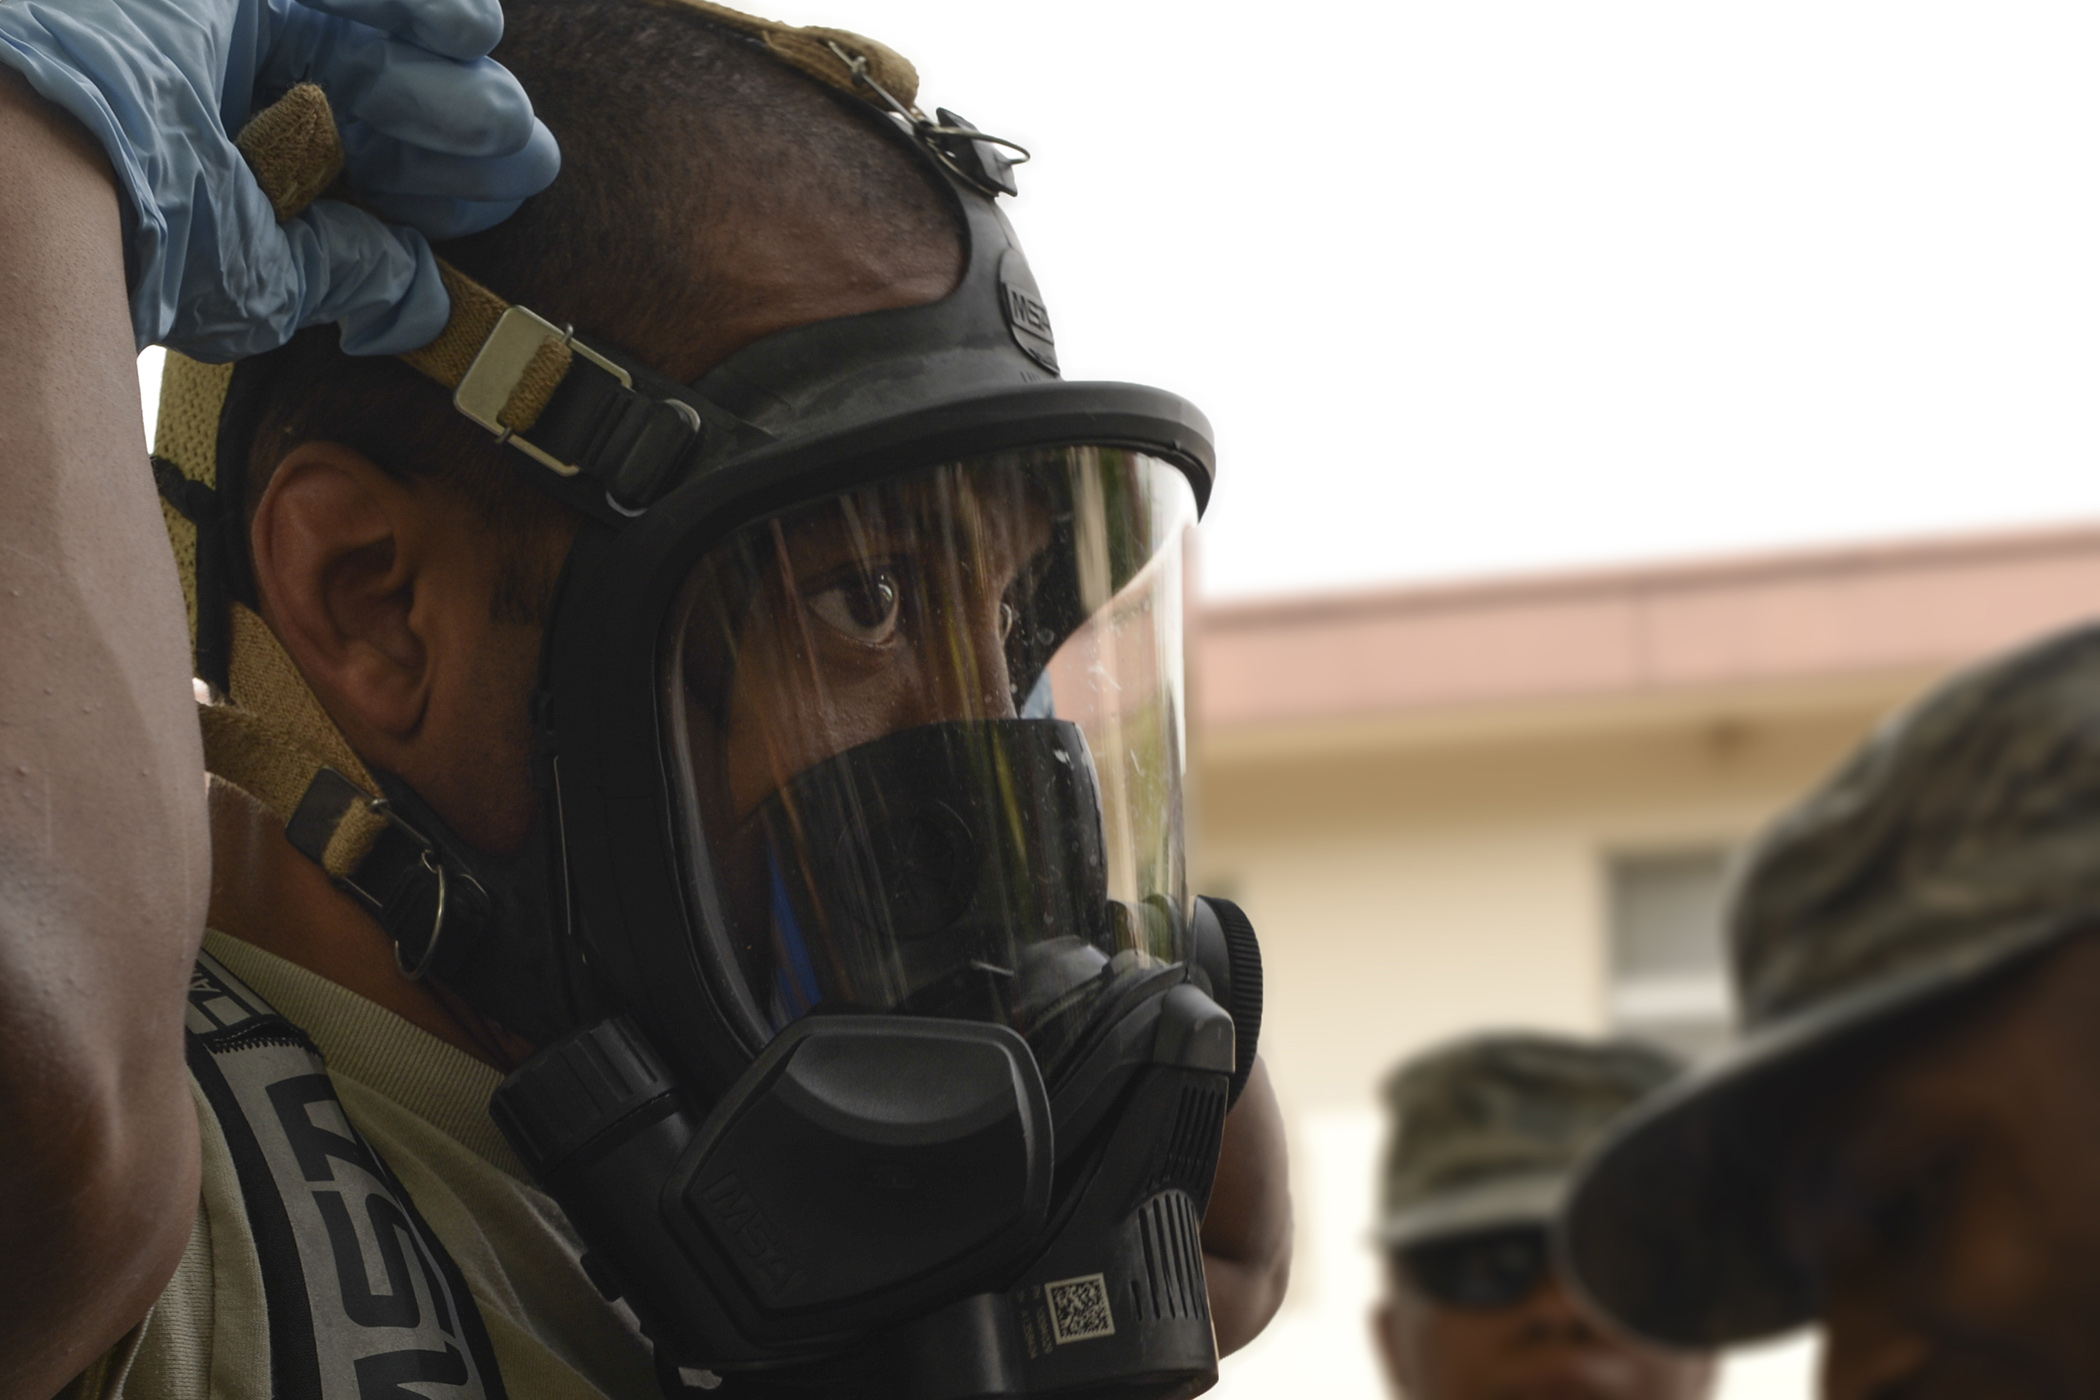 Staff Sgt. Sheraz Cedeno, 374th Civil Engineer Squadron NCO in charge of emergency management and operations, tightens his chemical mask before entering the scene of a mock environmental hazard, May 6, 2015, at Yokota Air Base, Japan. Participants practiced responding to a training scenario involving a passed out resident inside base housing. (U.S. Air Force photo by Airman 1st Class Elizabeth Baker/Released)